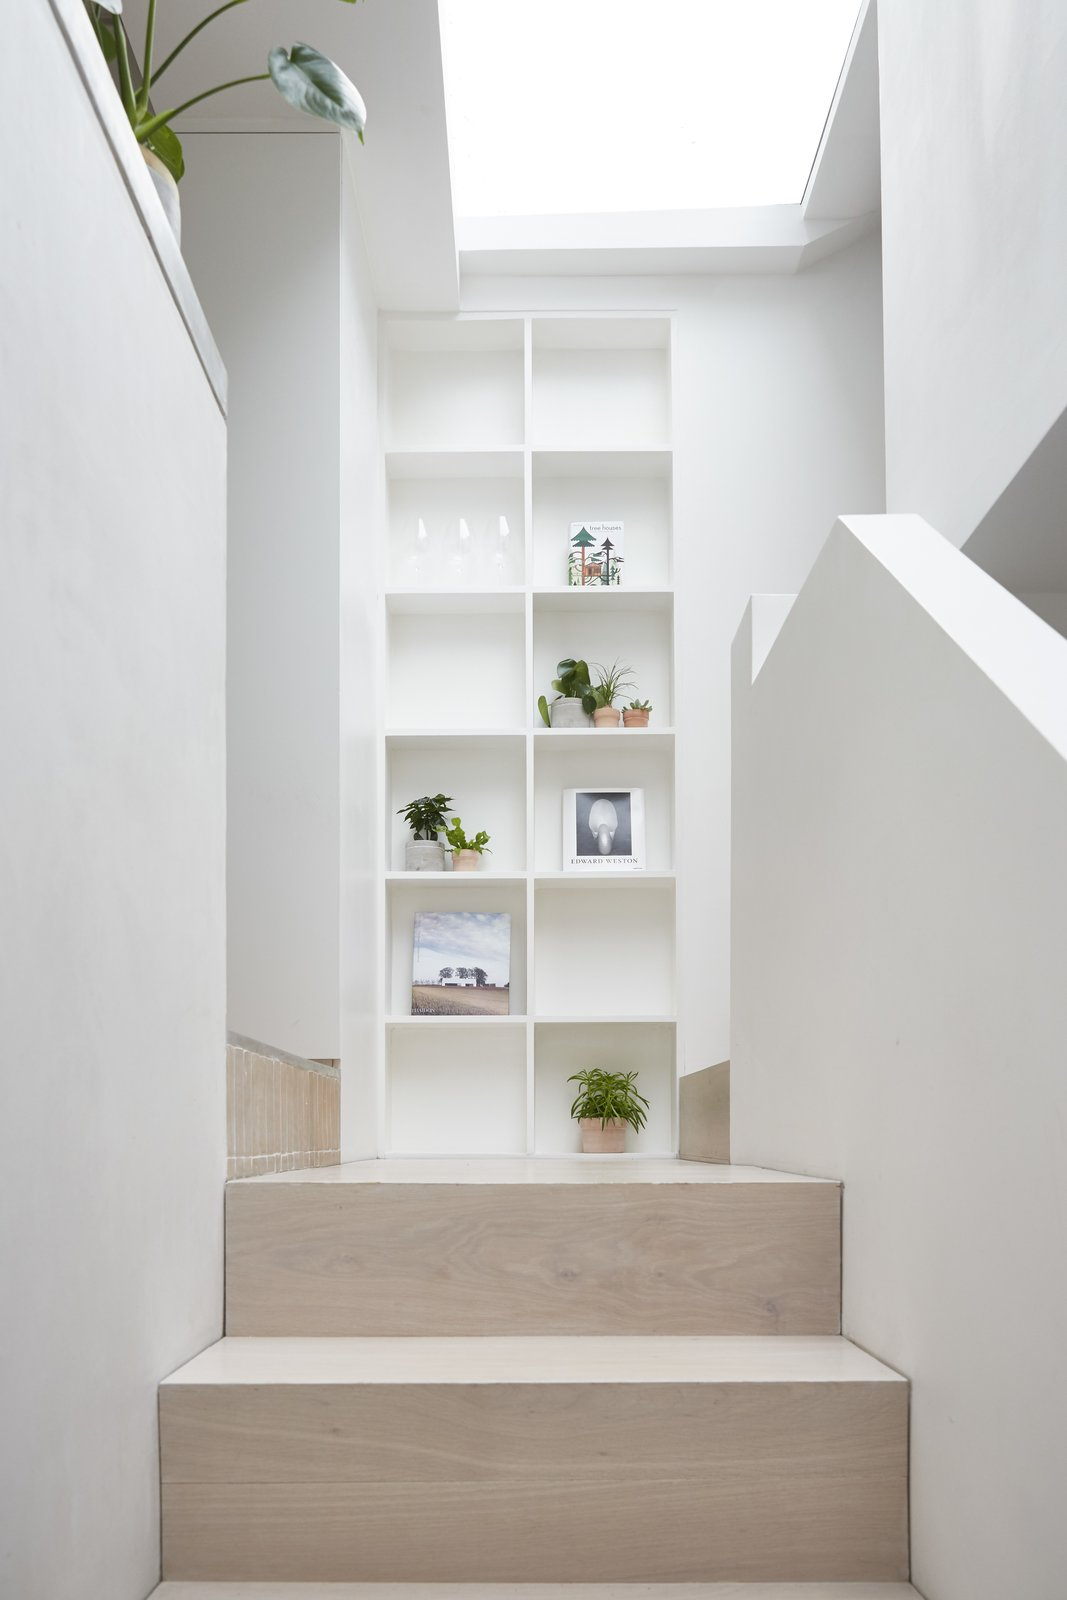 A new stair to the kitchen is clad in oak, and natural light floods in from the roof light above